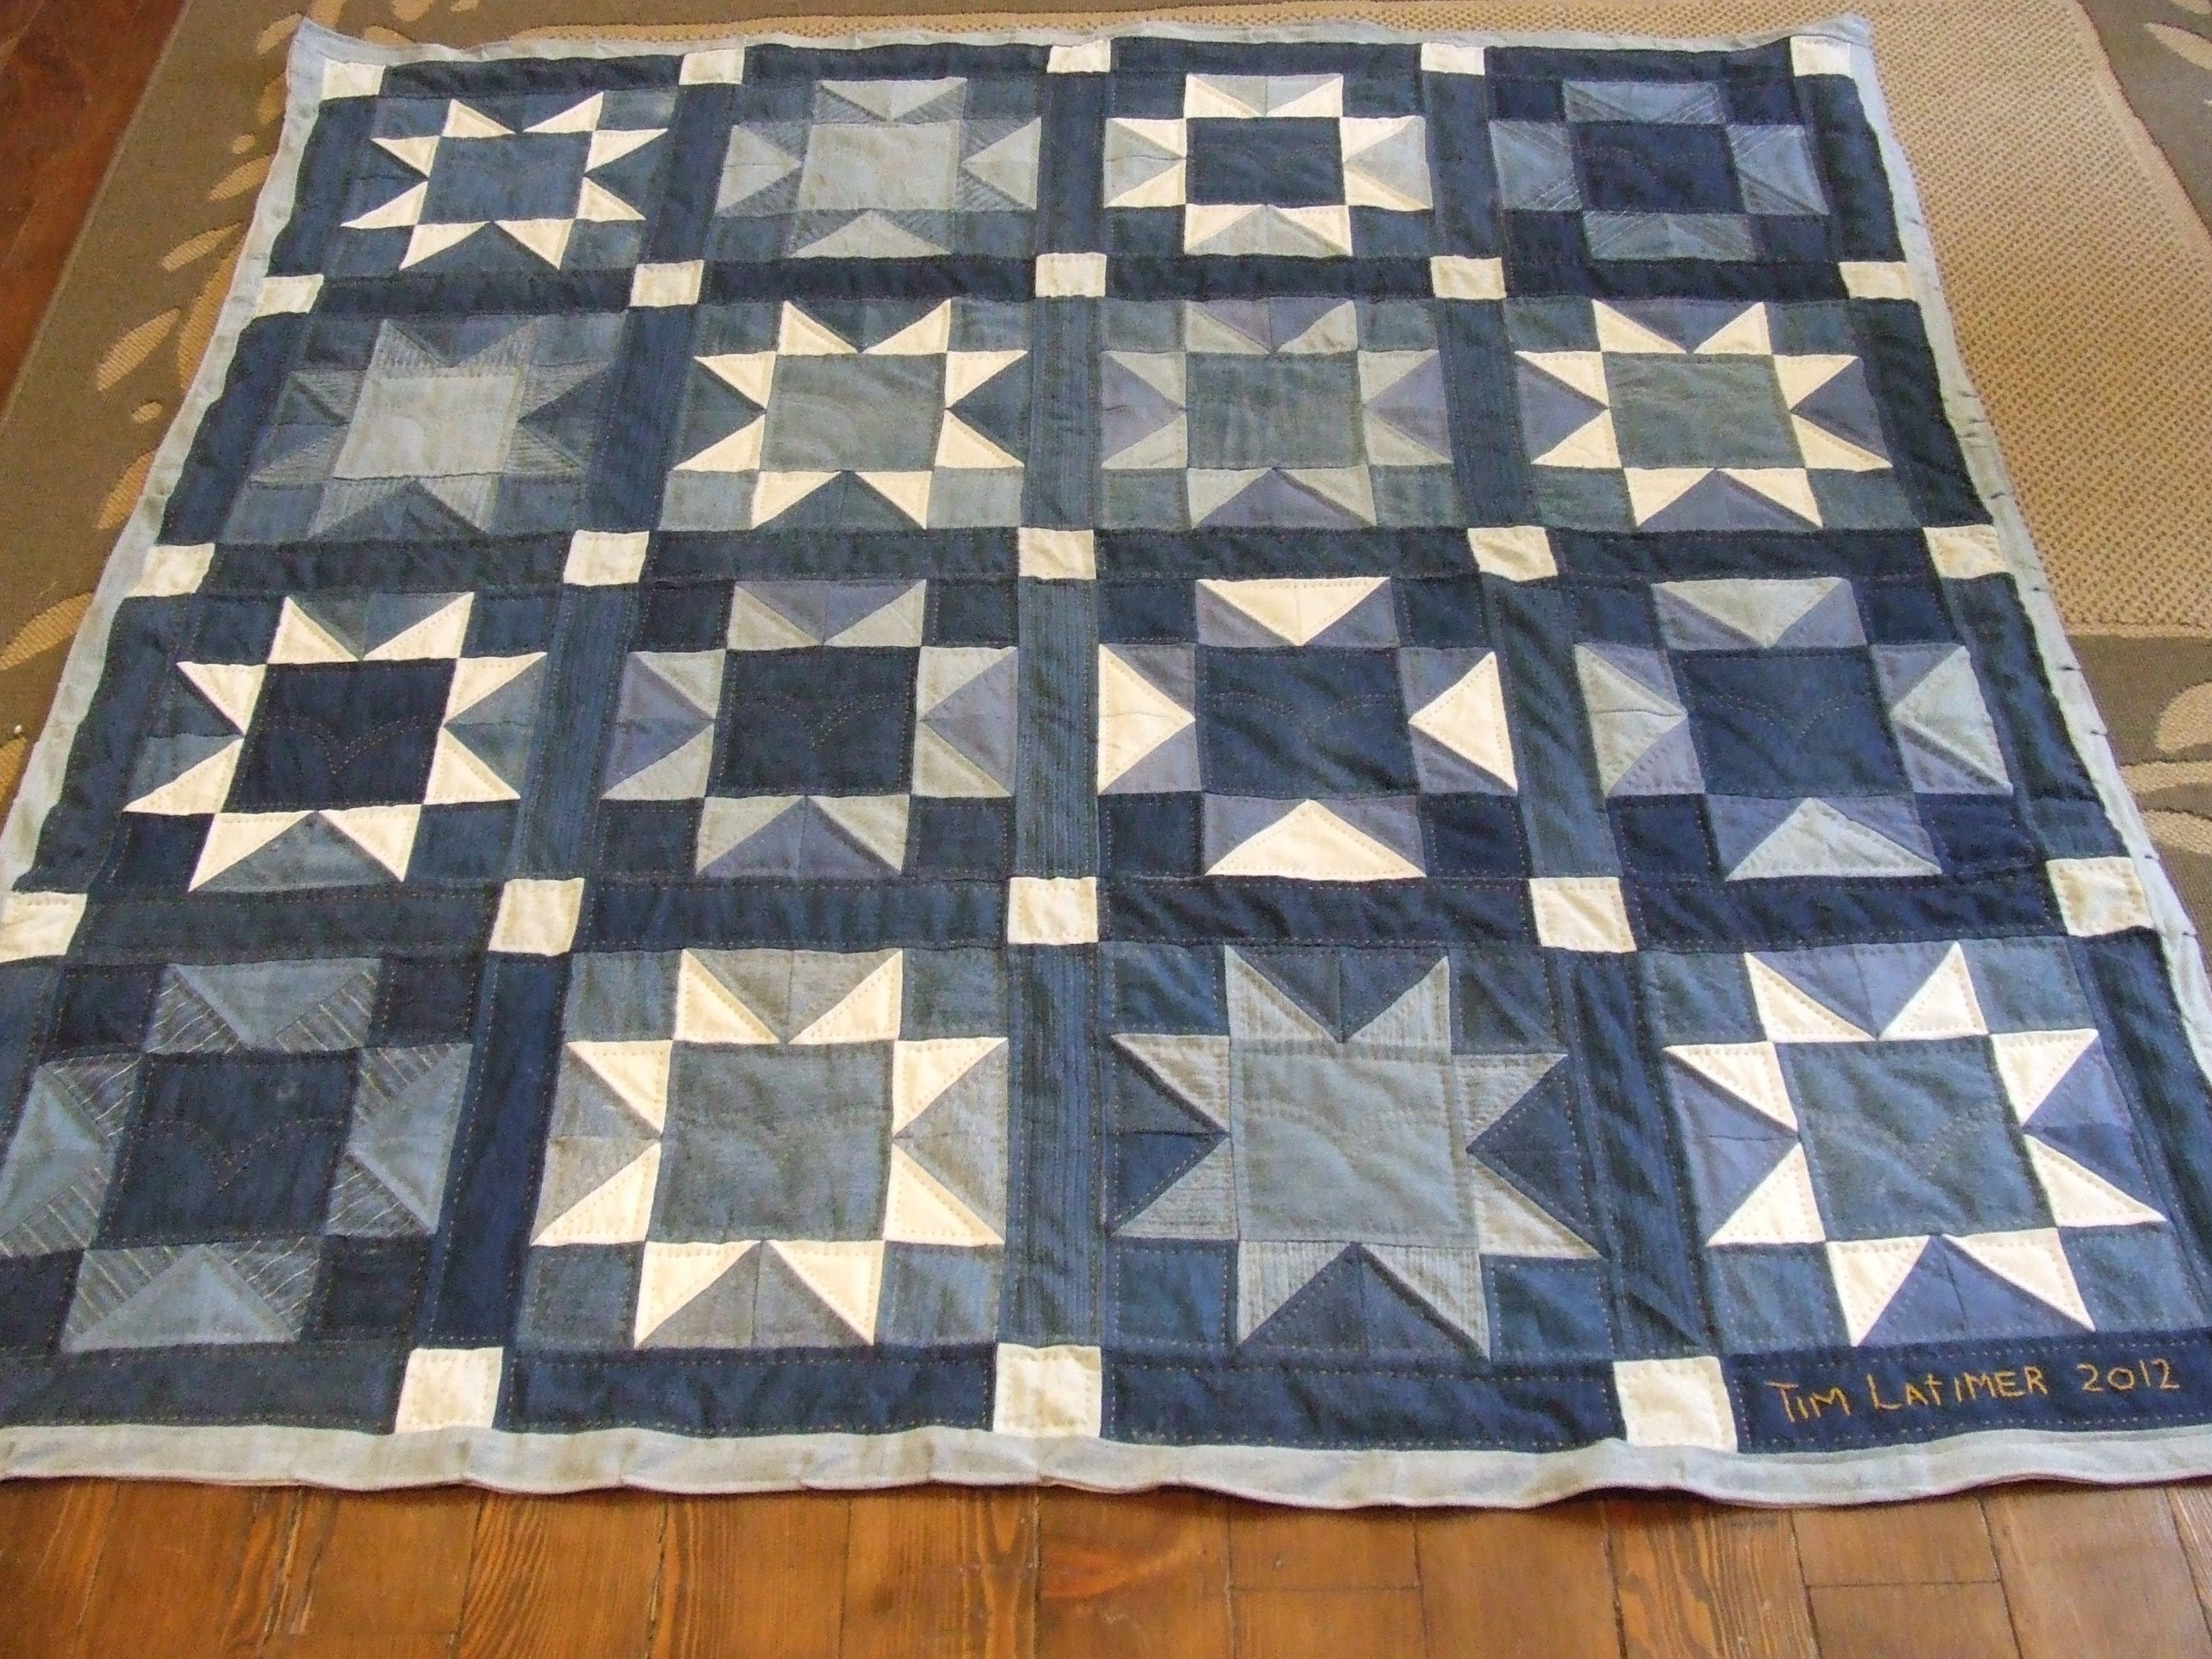 How to make a denim quilt from jeans